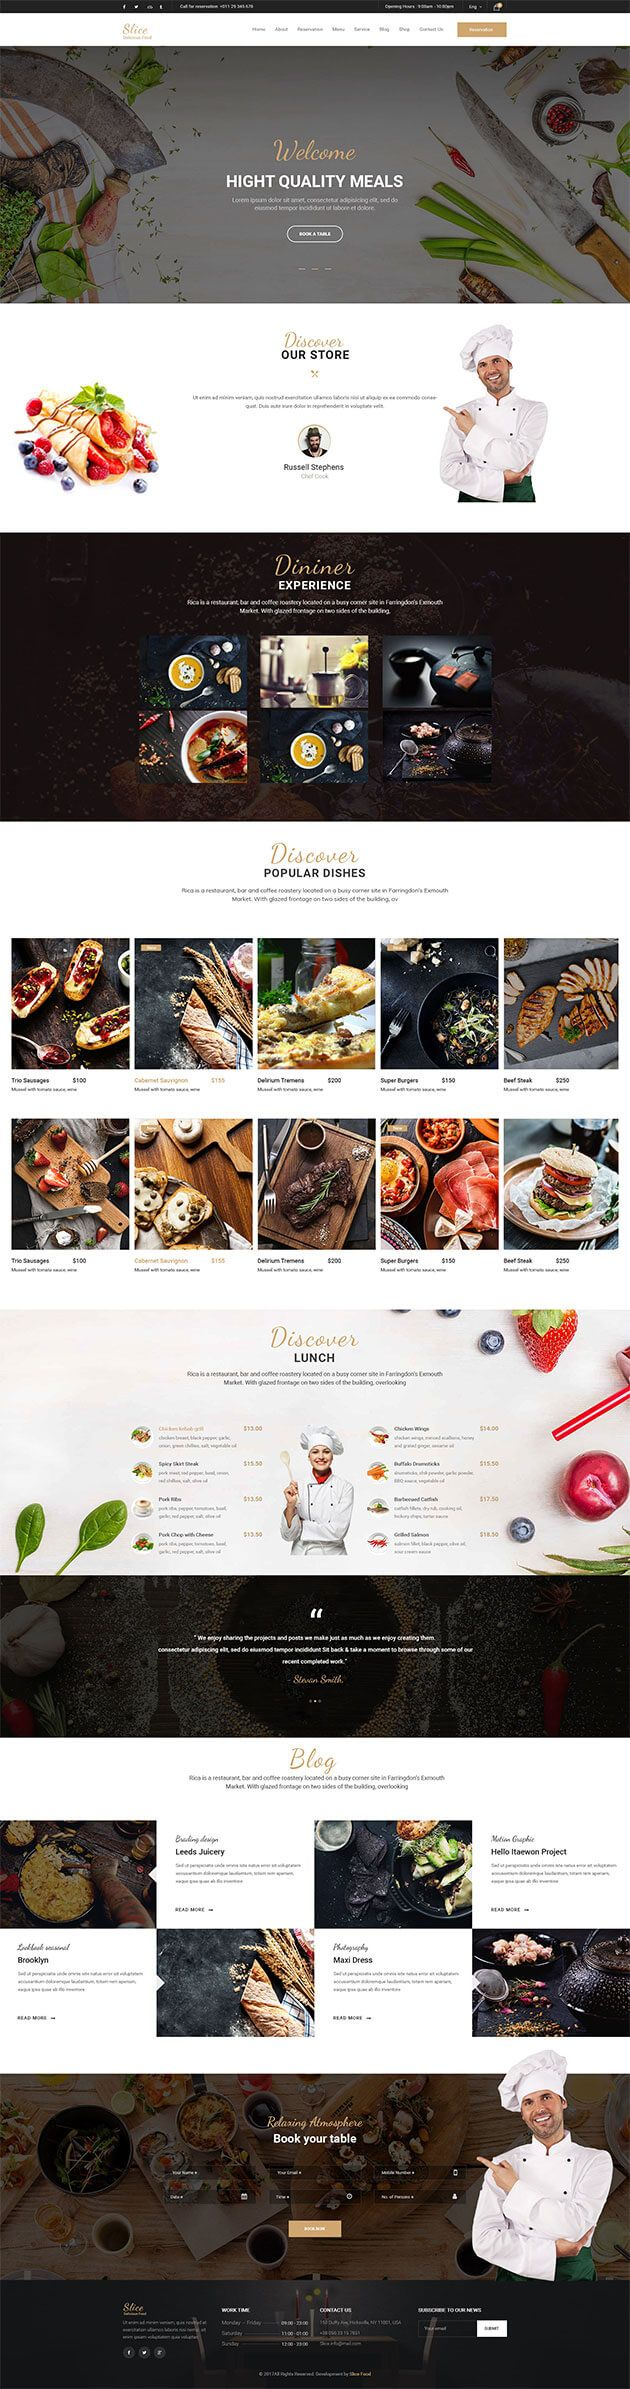 Restaurant Responsive Website Templates Free Download Restaurant